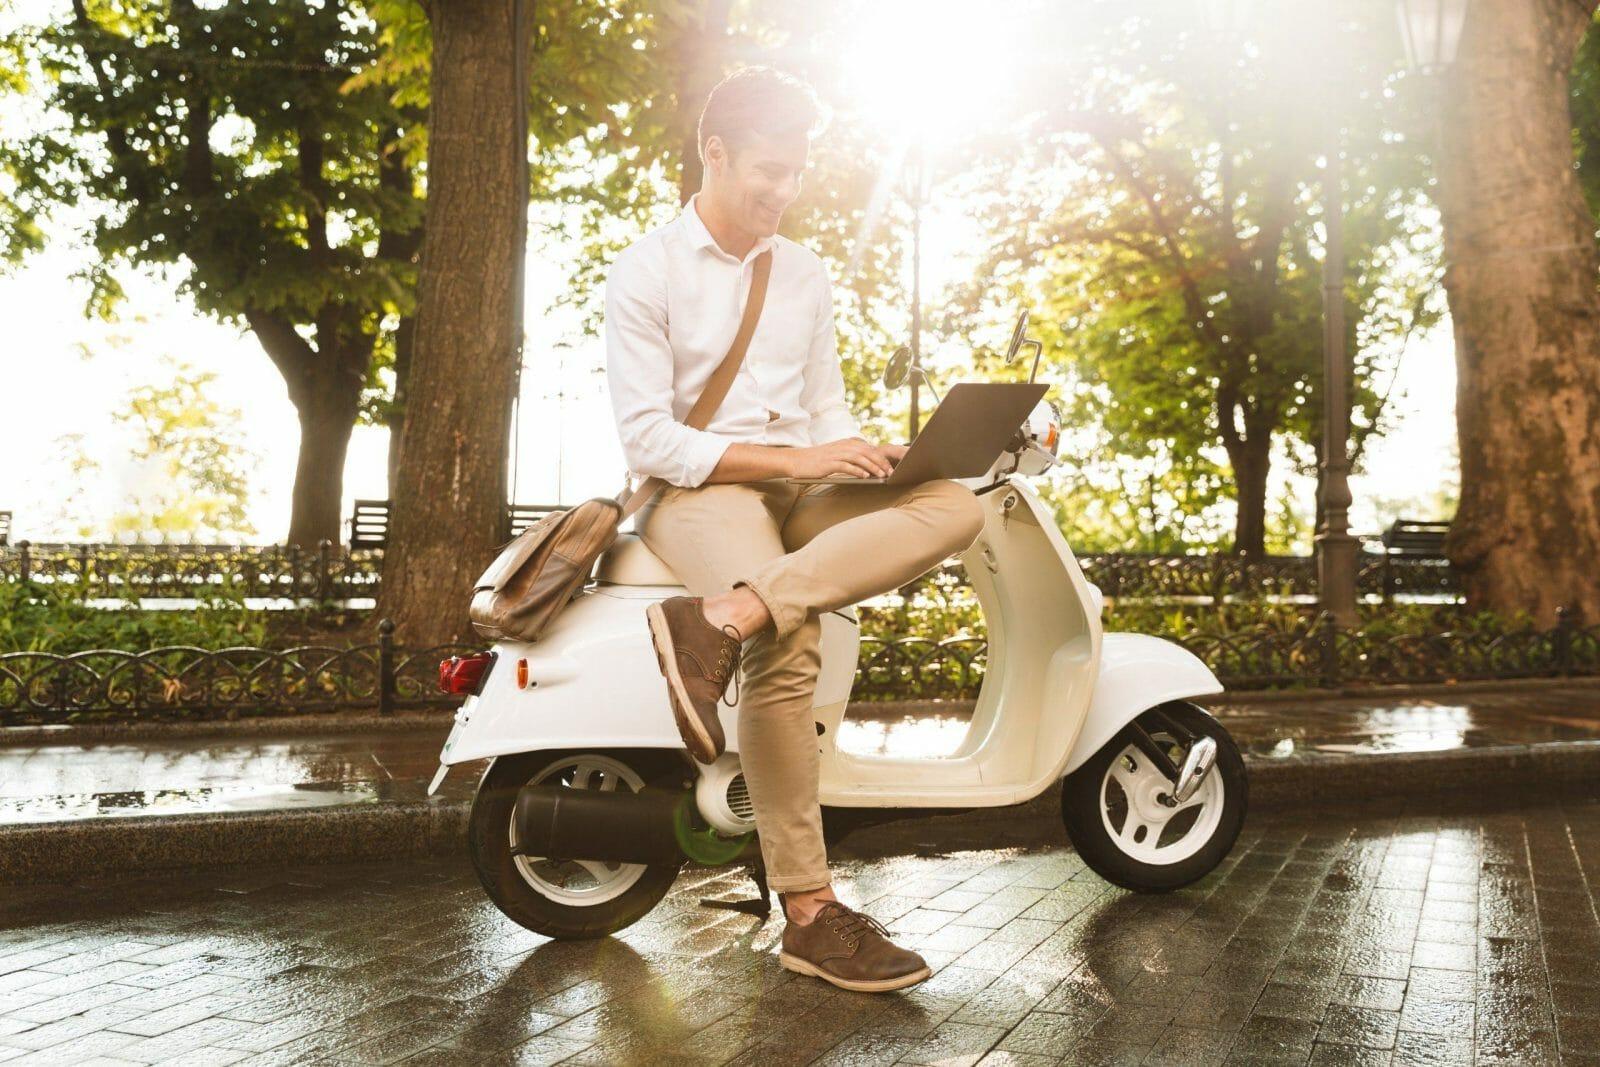 Cheerful young businessman sitting on a motorbike outdoors, working on laptop computer